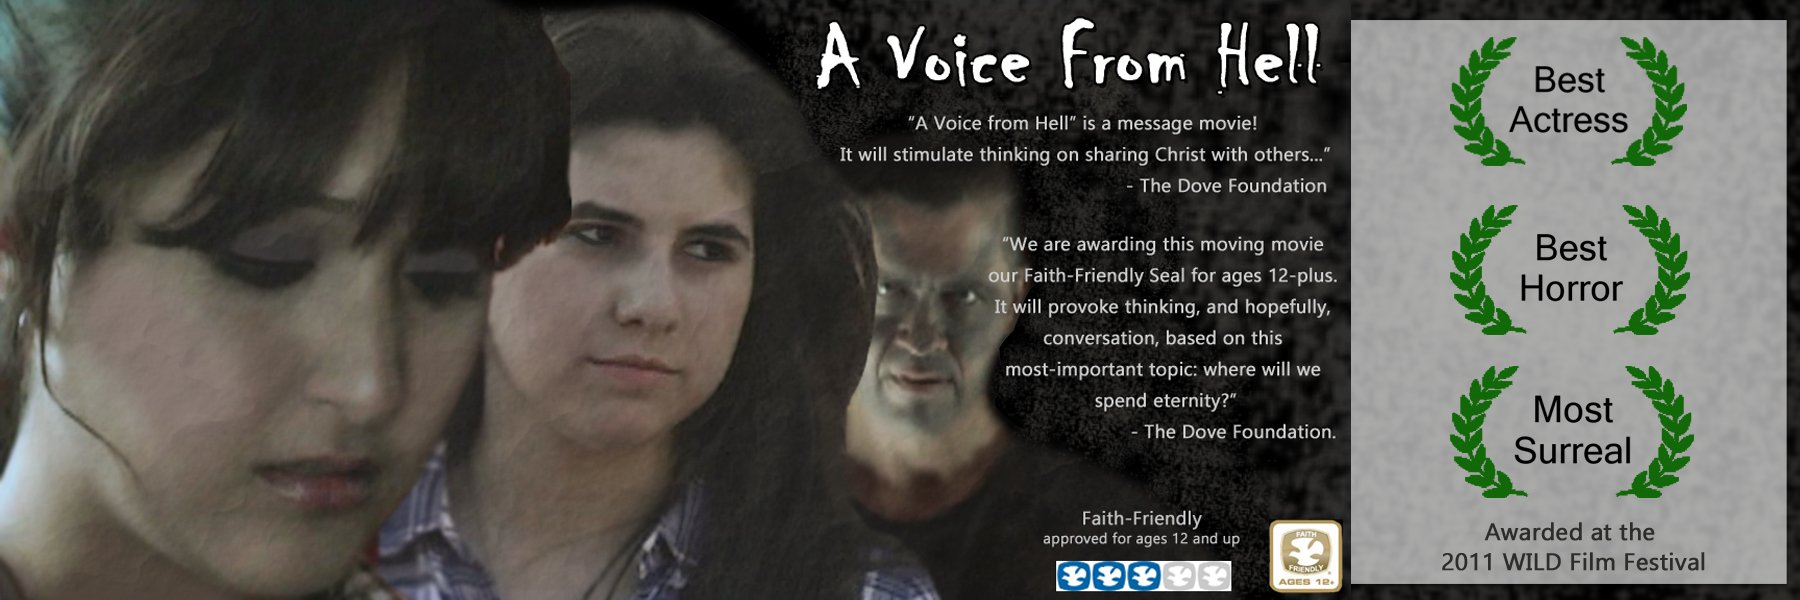 A Voice From Hell - Official Full Movie